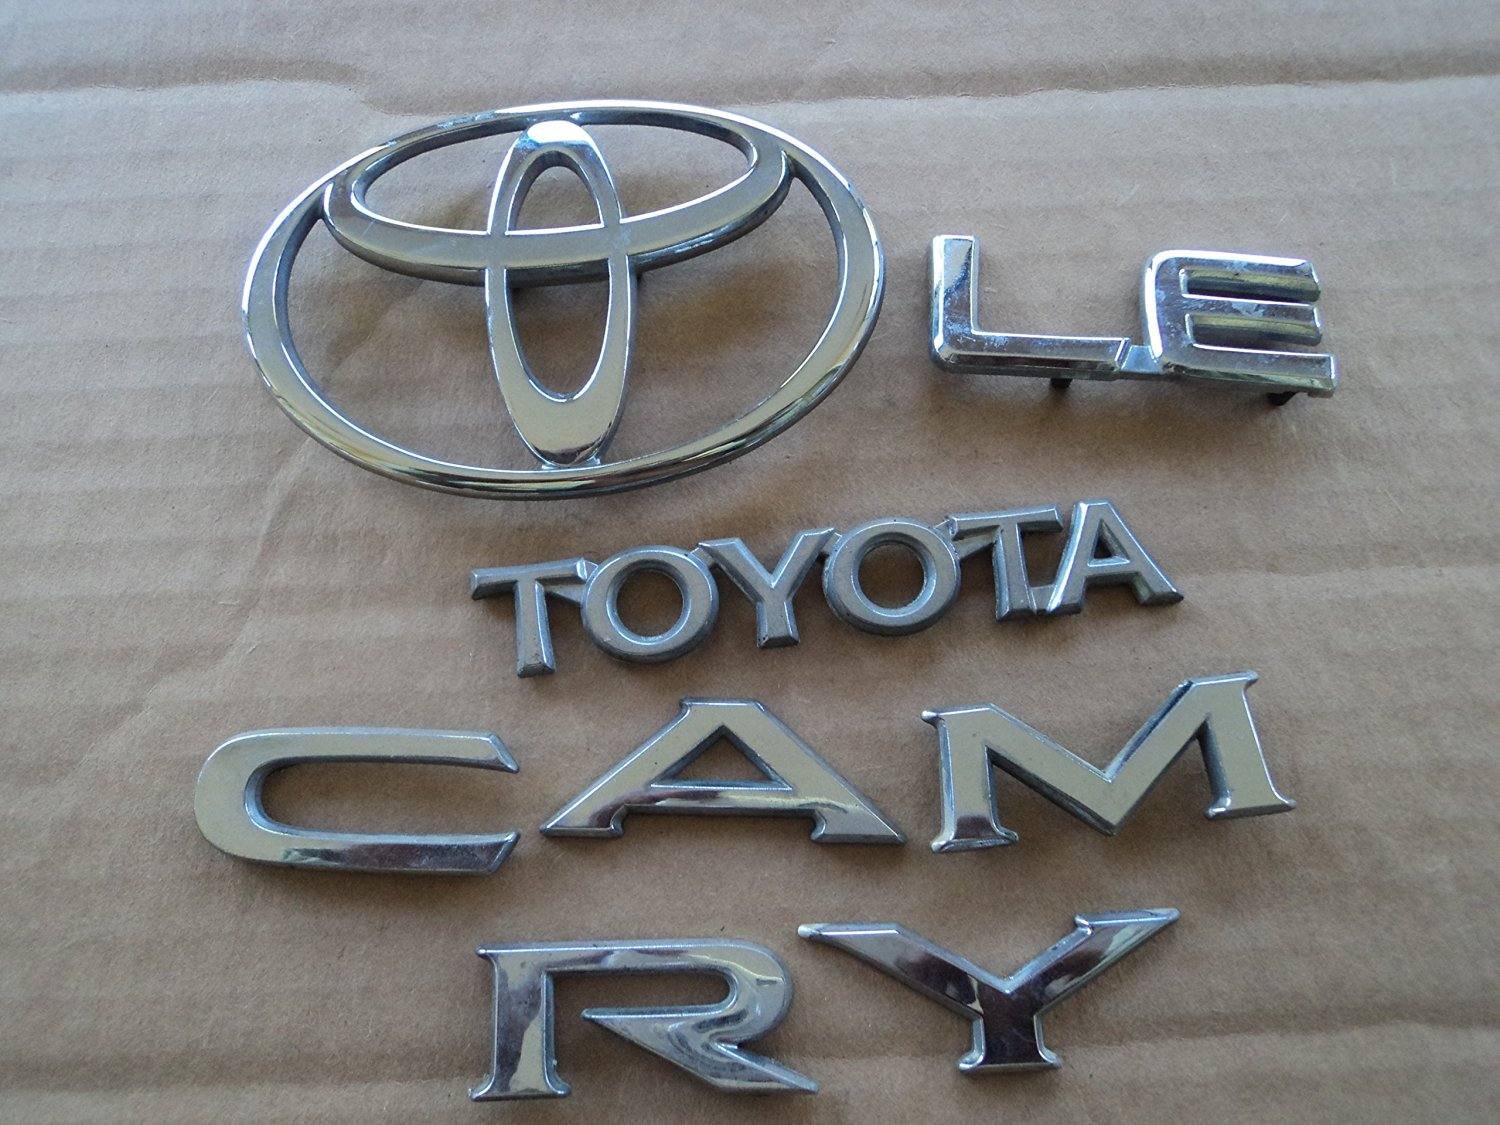 92 94 Toyota Camry Le Lid Trim Chrome Logo Badge Separated Used Emblem Decal Set